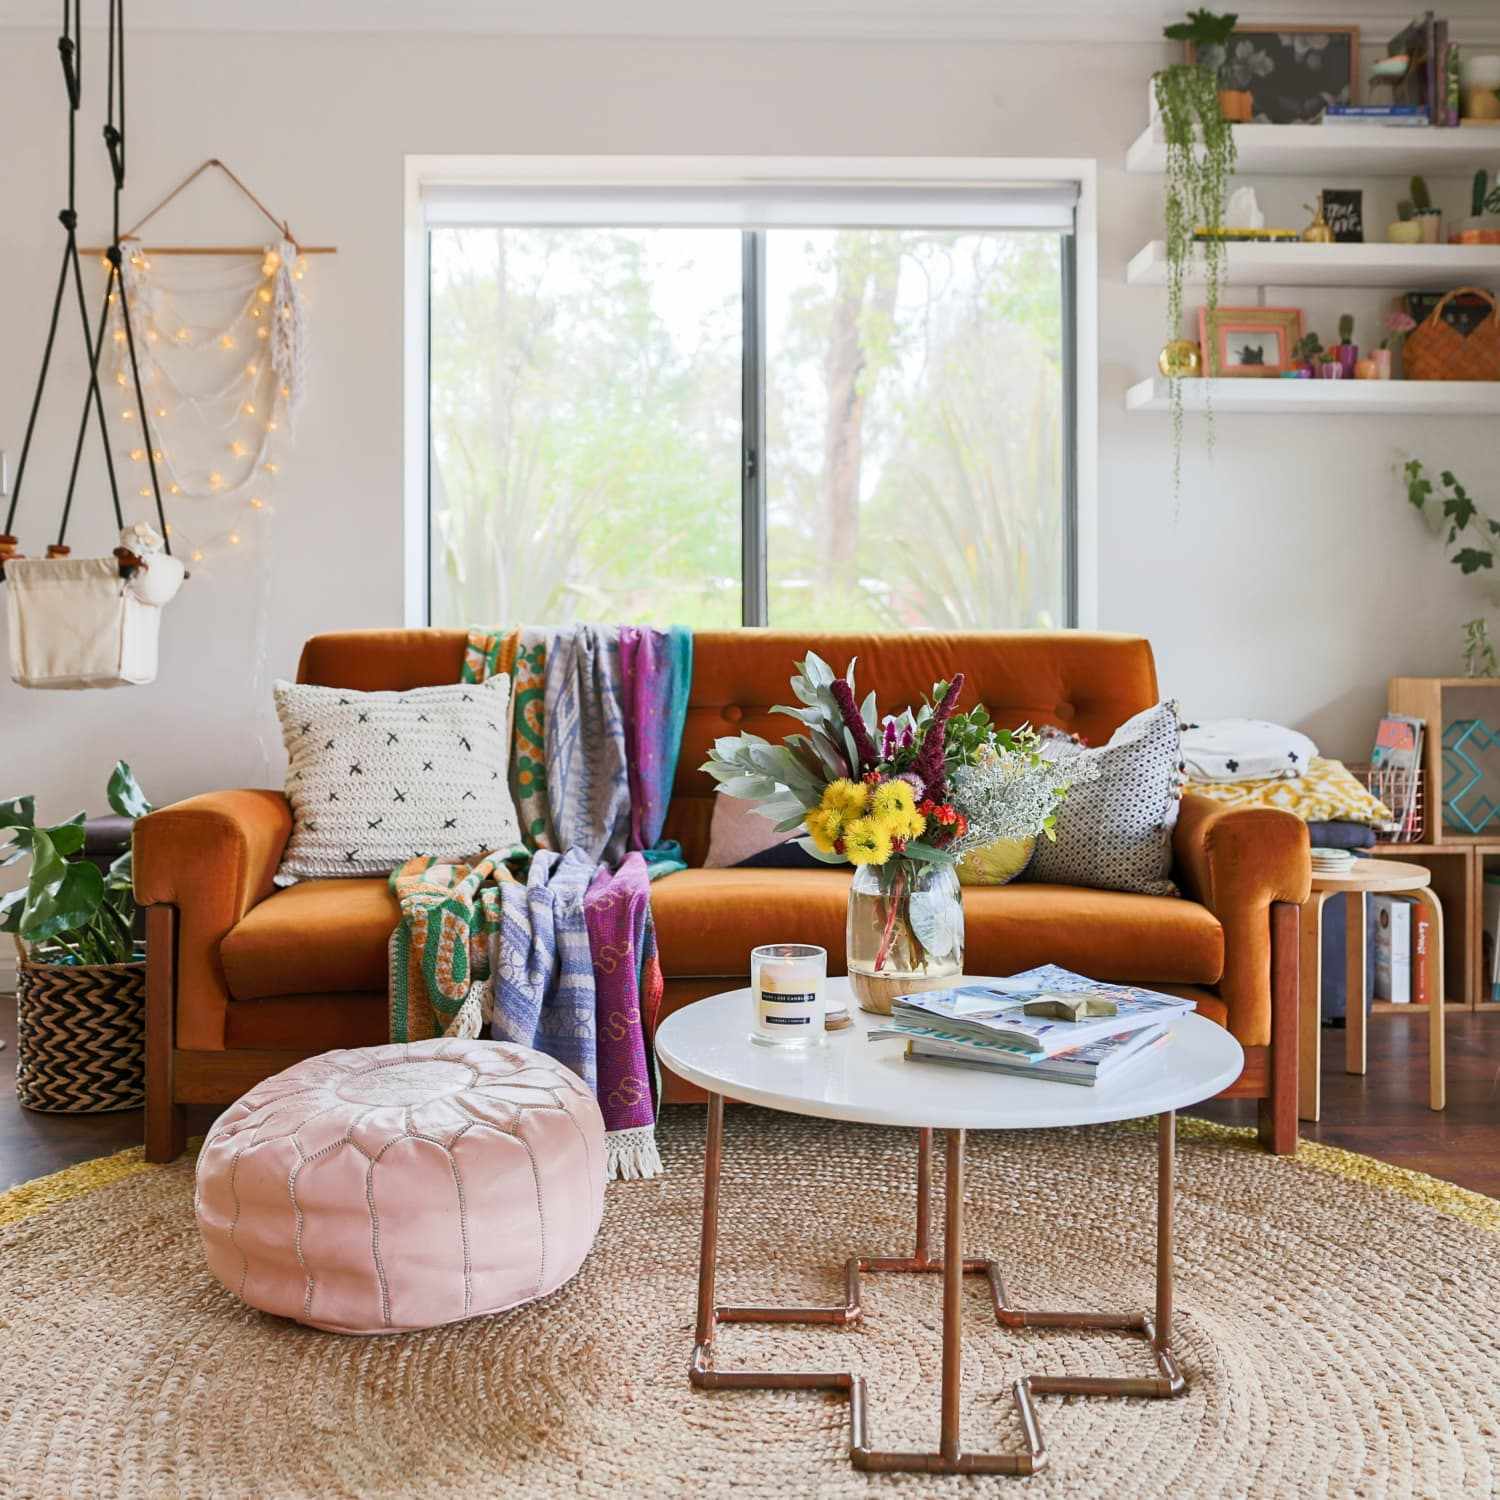 Image result for Exhilarating Ideas for Home Decor - Because Each Home Has A Story To Tell!""